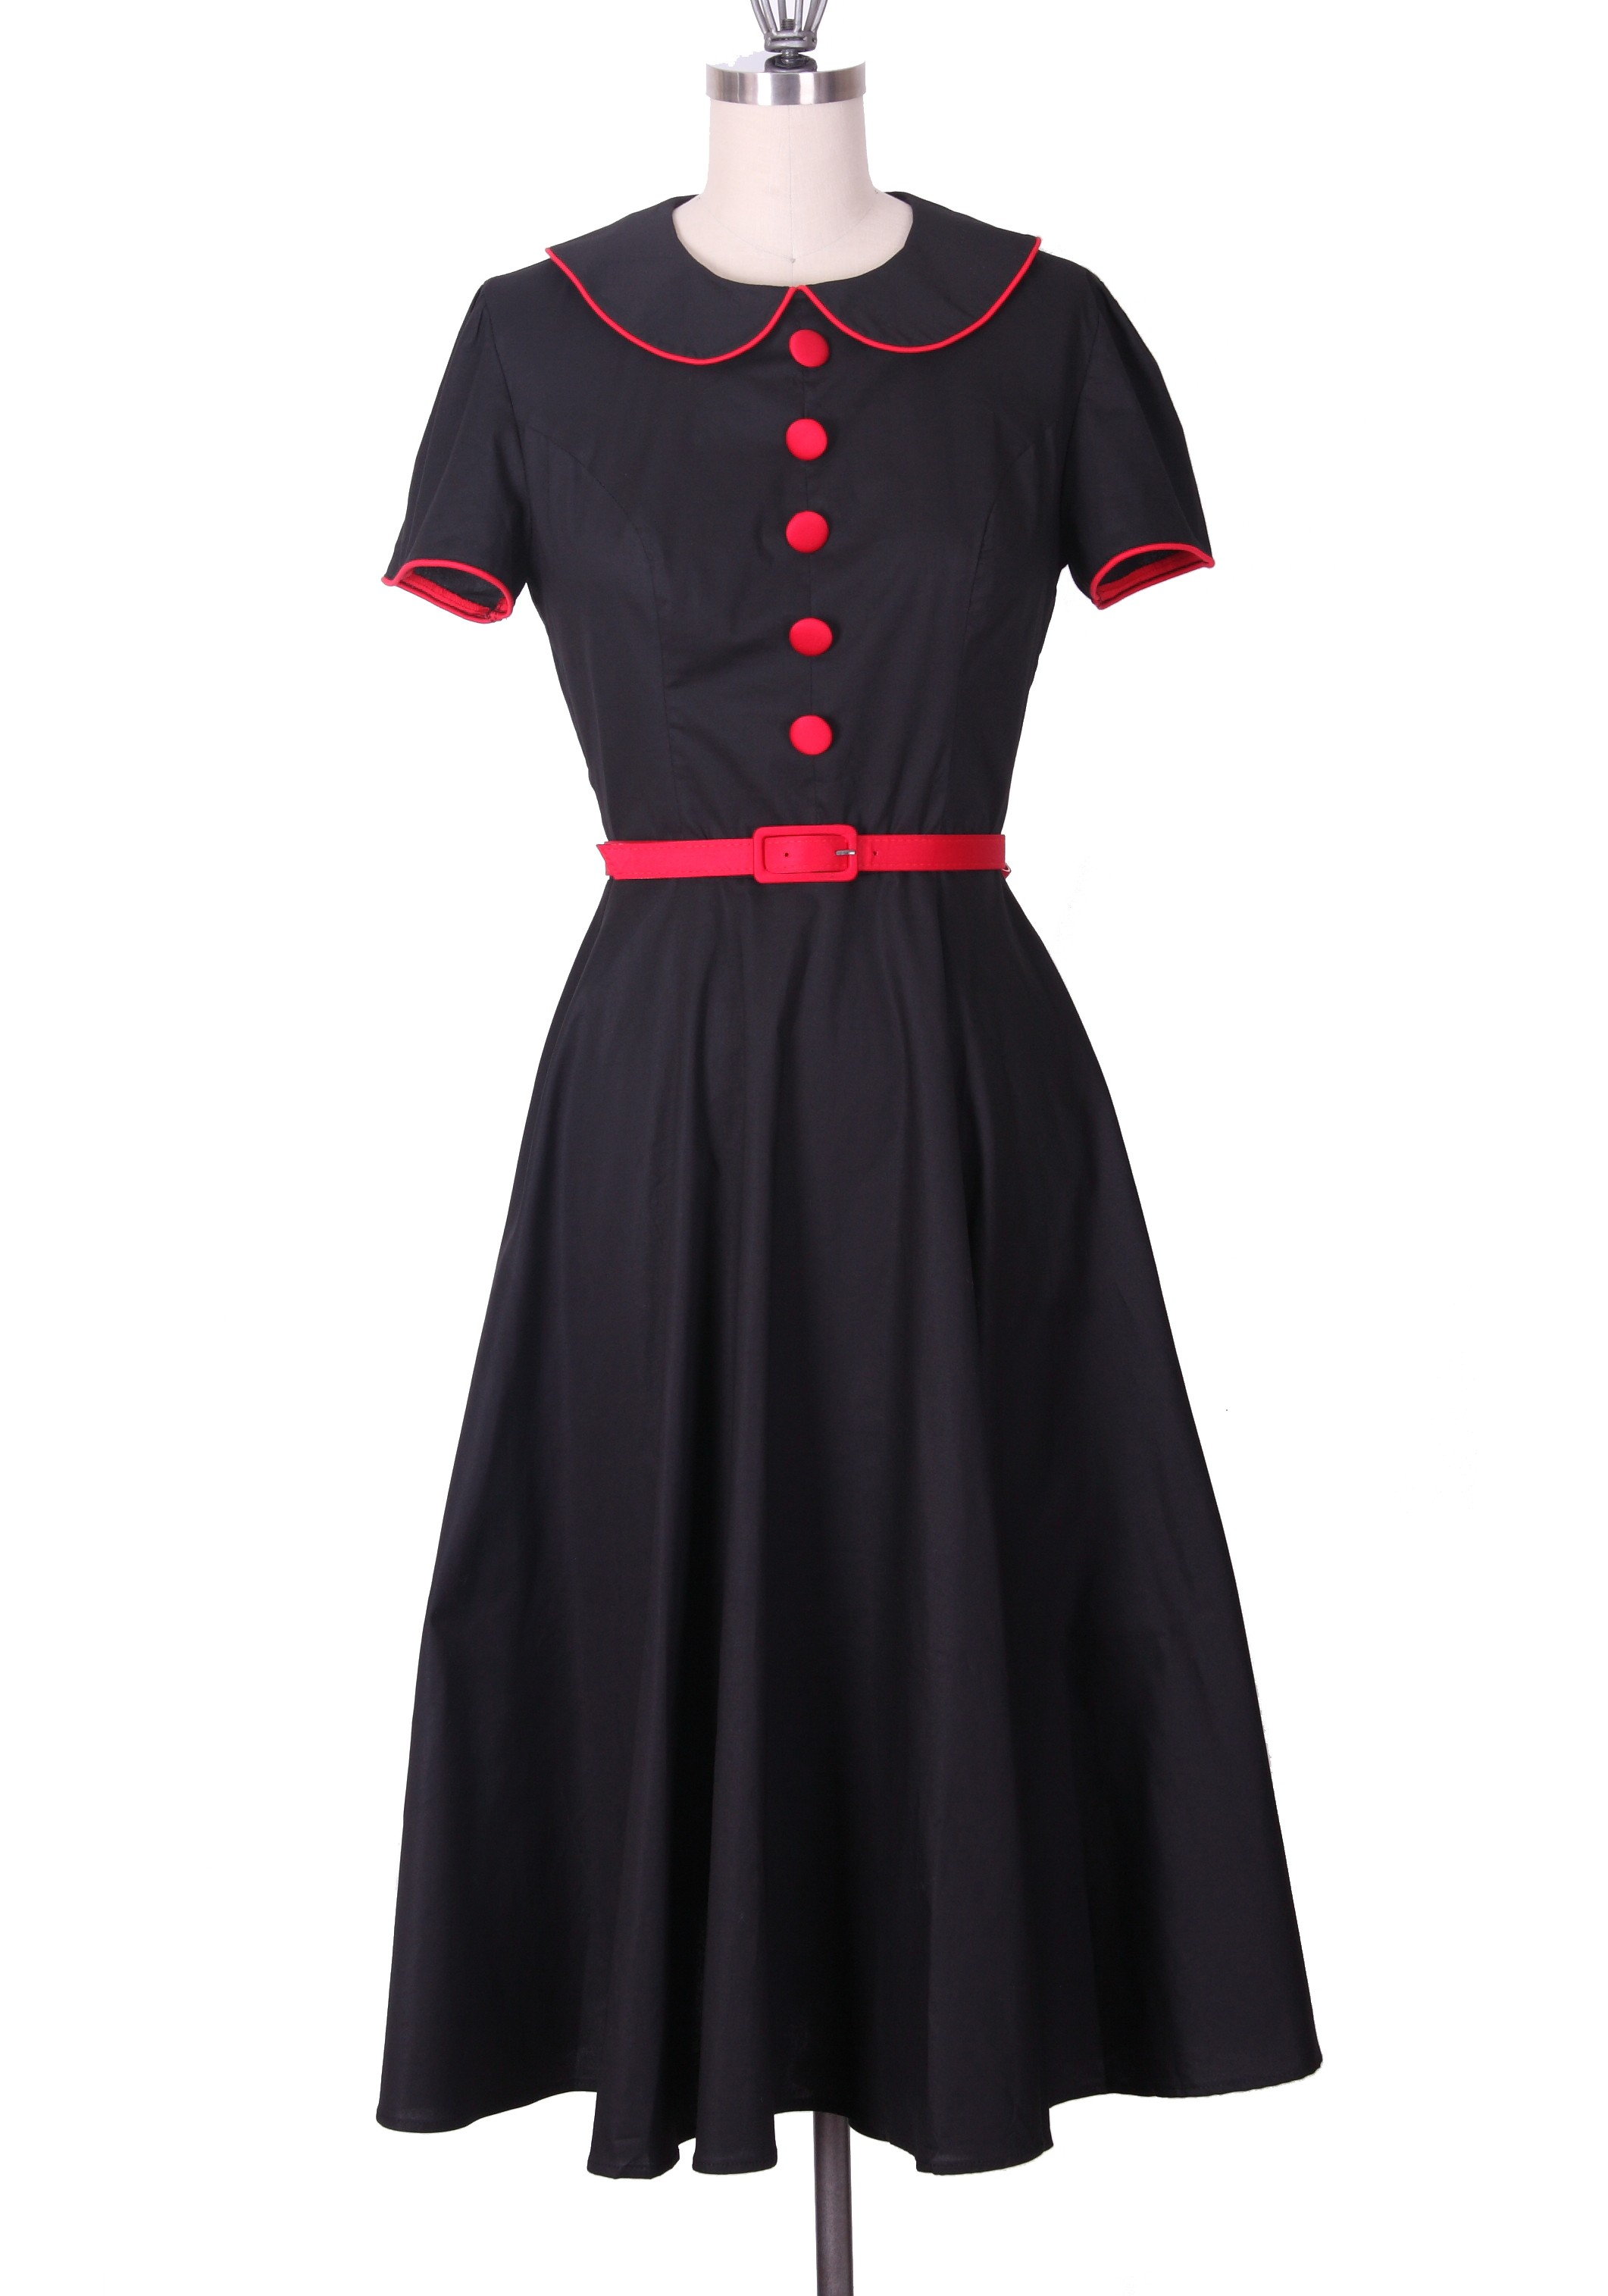 Fly Away to Sophisticated Power 50s Vintage Dress | ReoRia